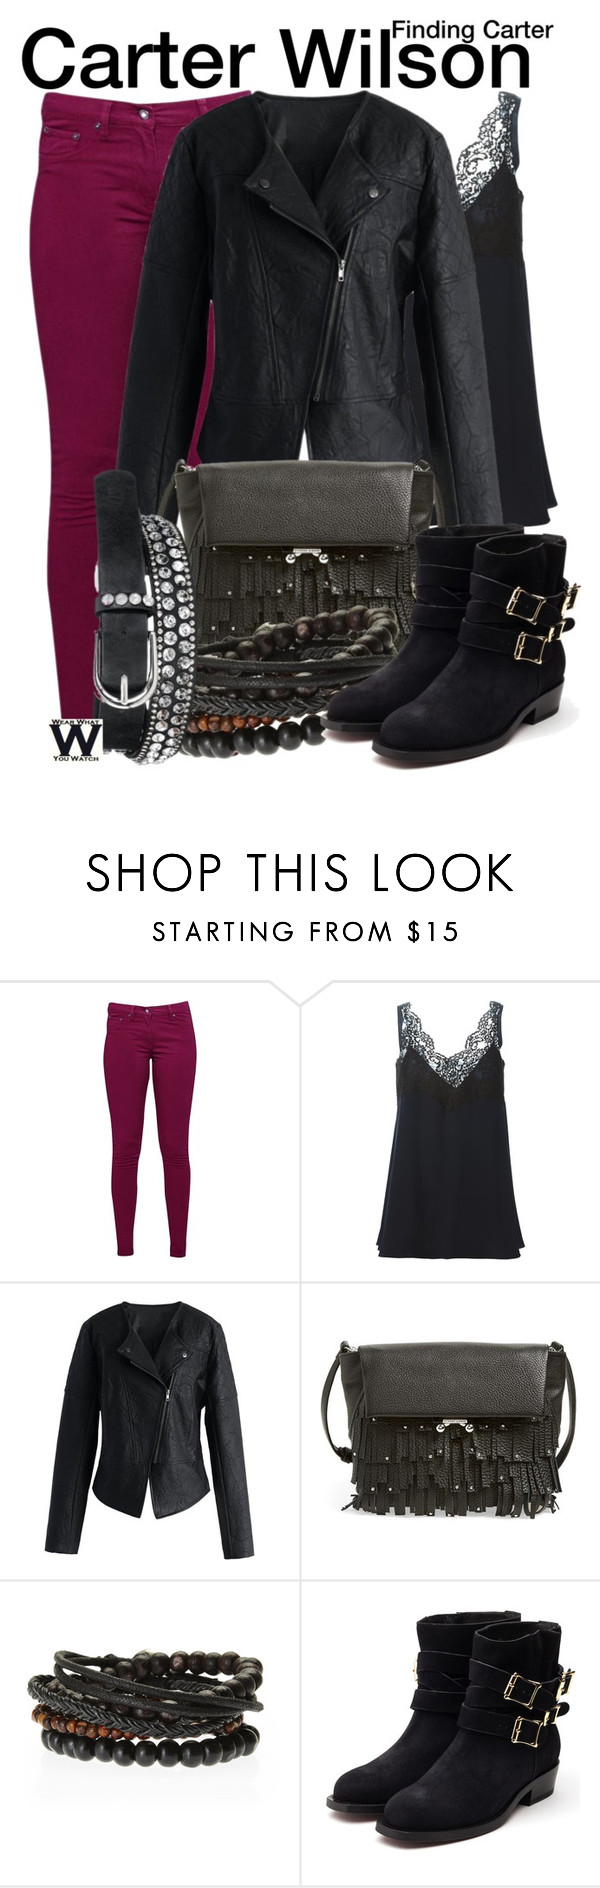 """""""Finding Carter"""" by wearwhatyouwatch ❤ liked on Polyvore featuring Great Plains, Chloé, Chicwish, Etienne Aigner, Rupert Sanderson, maurices, television and wearwhatyouwatch"""